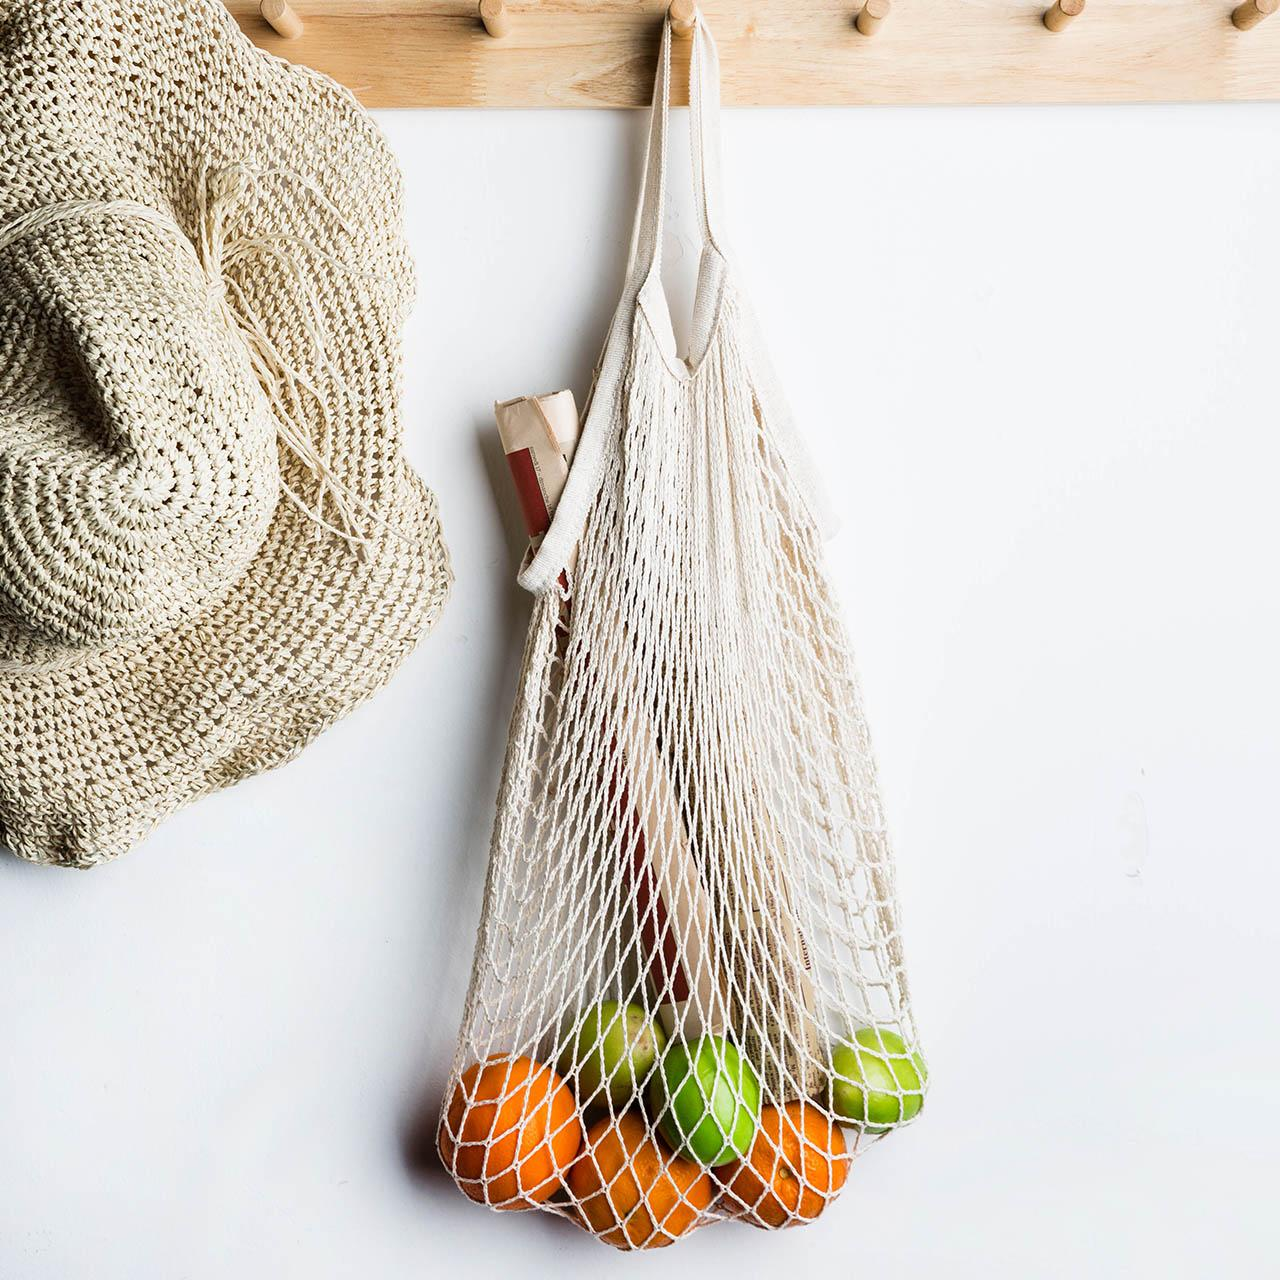 Resuable Fruit Vegetable Shopping Bag String Shopper Cotton Hand Totes Mesh Woven Net Hanging Storage Bag Kitchen Organizer Tool